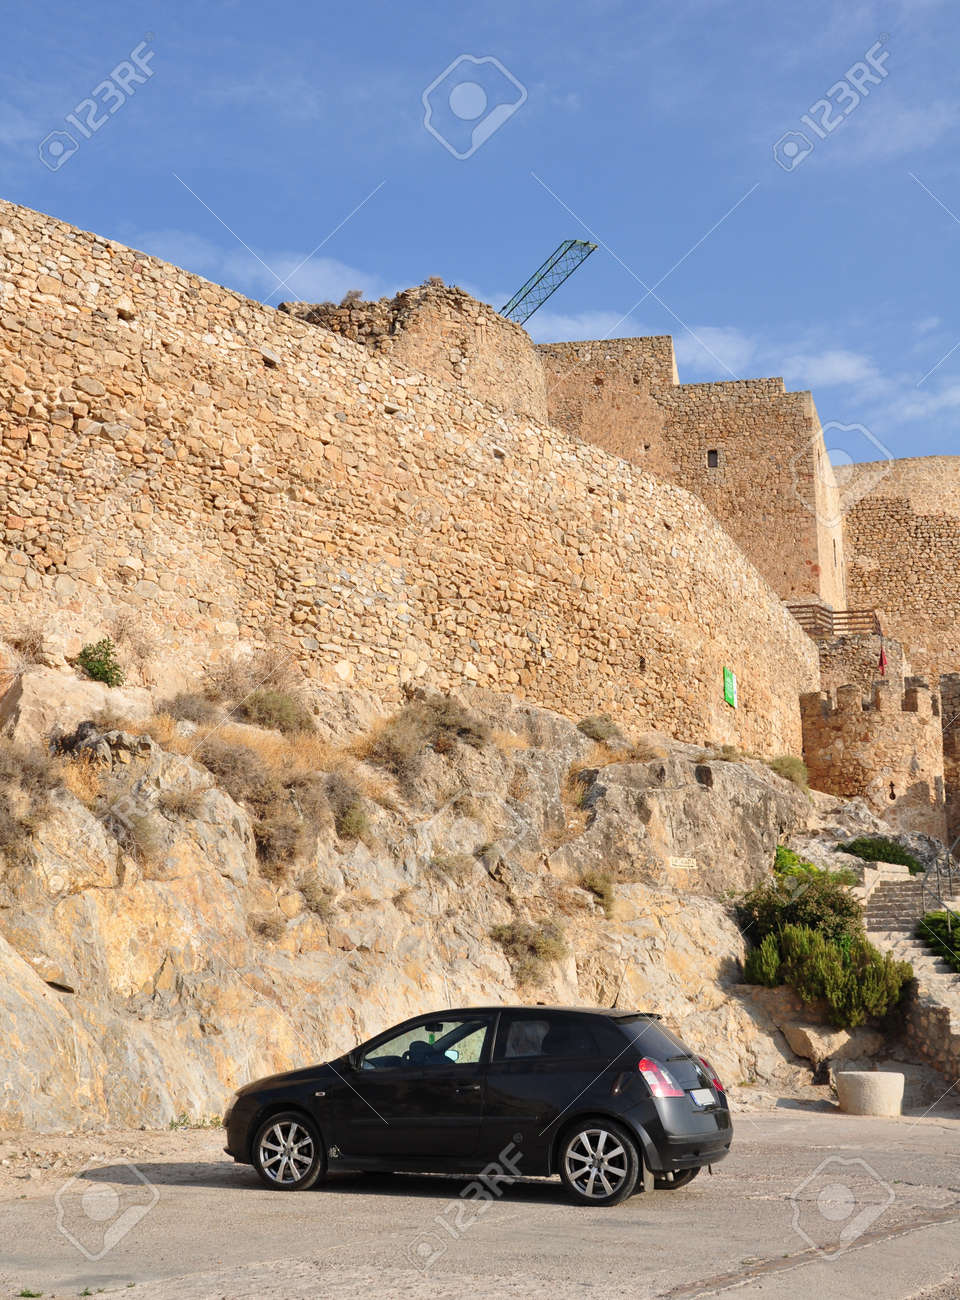 modern car parked in front of acient ruins Stock Photo - 15191883